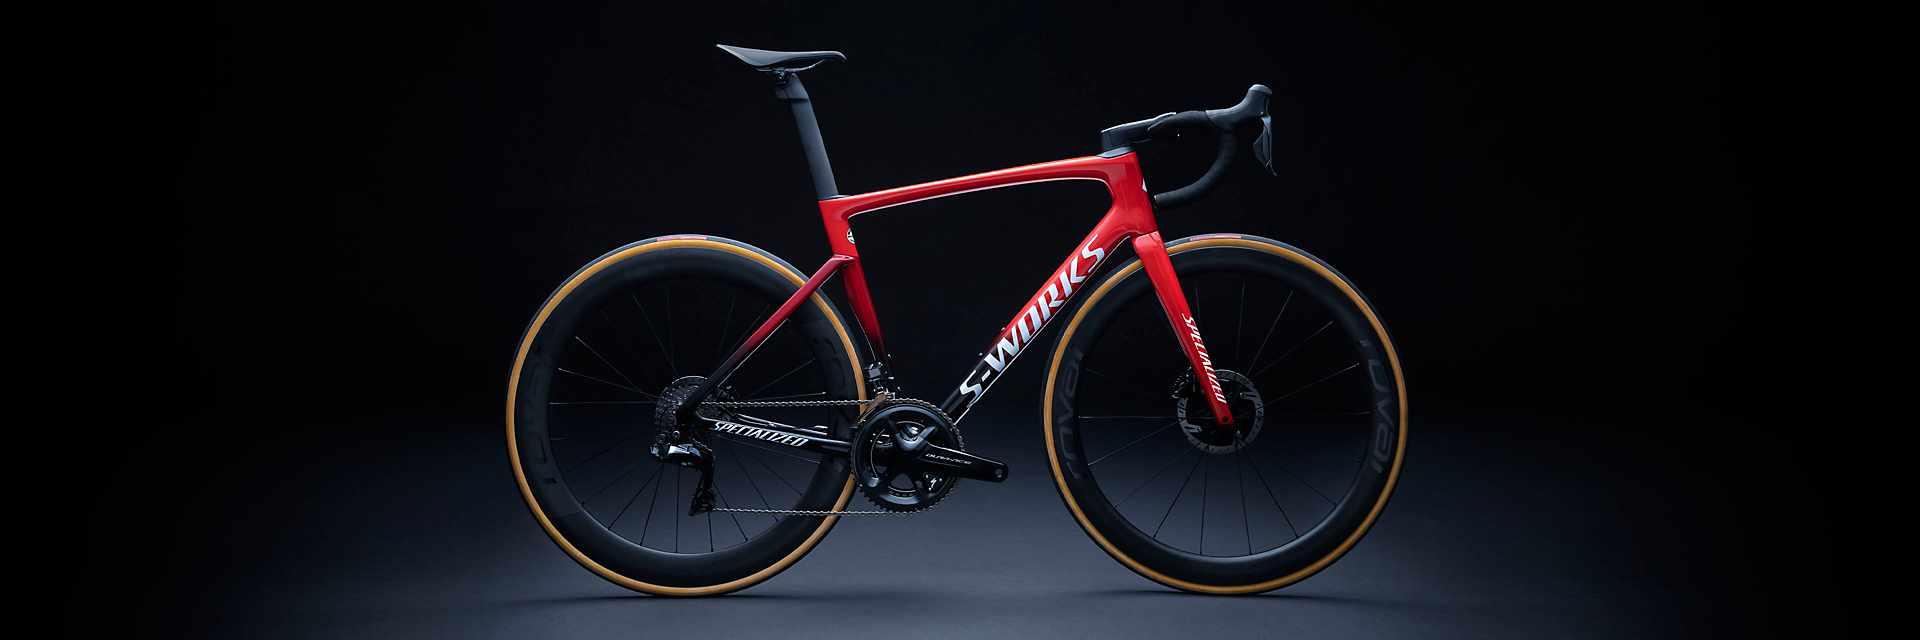 Specialized Tarmac SL7 2021